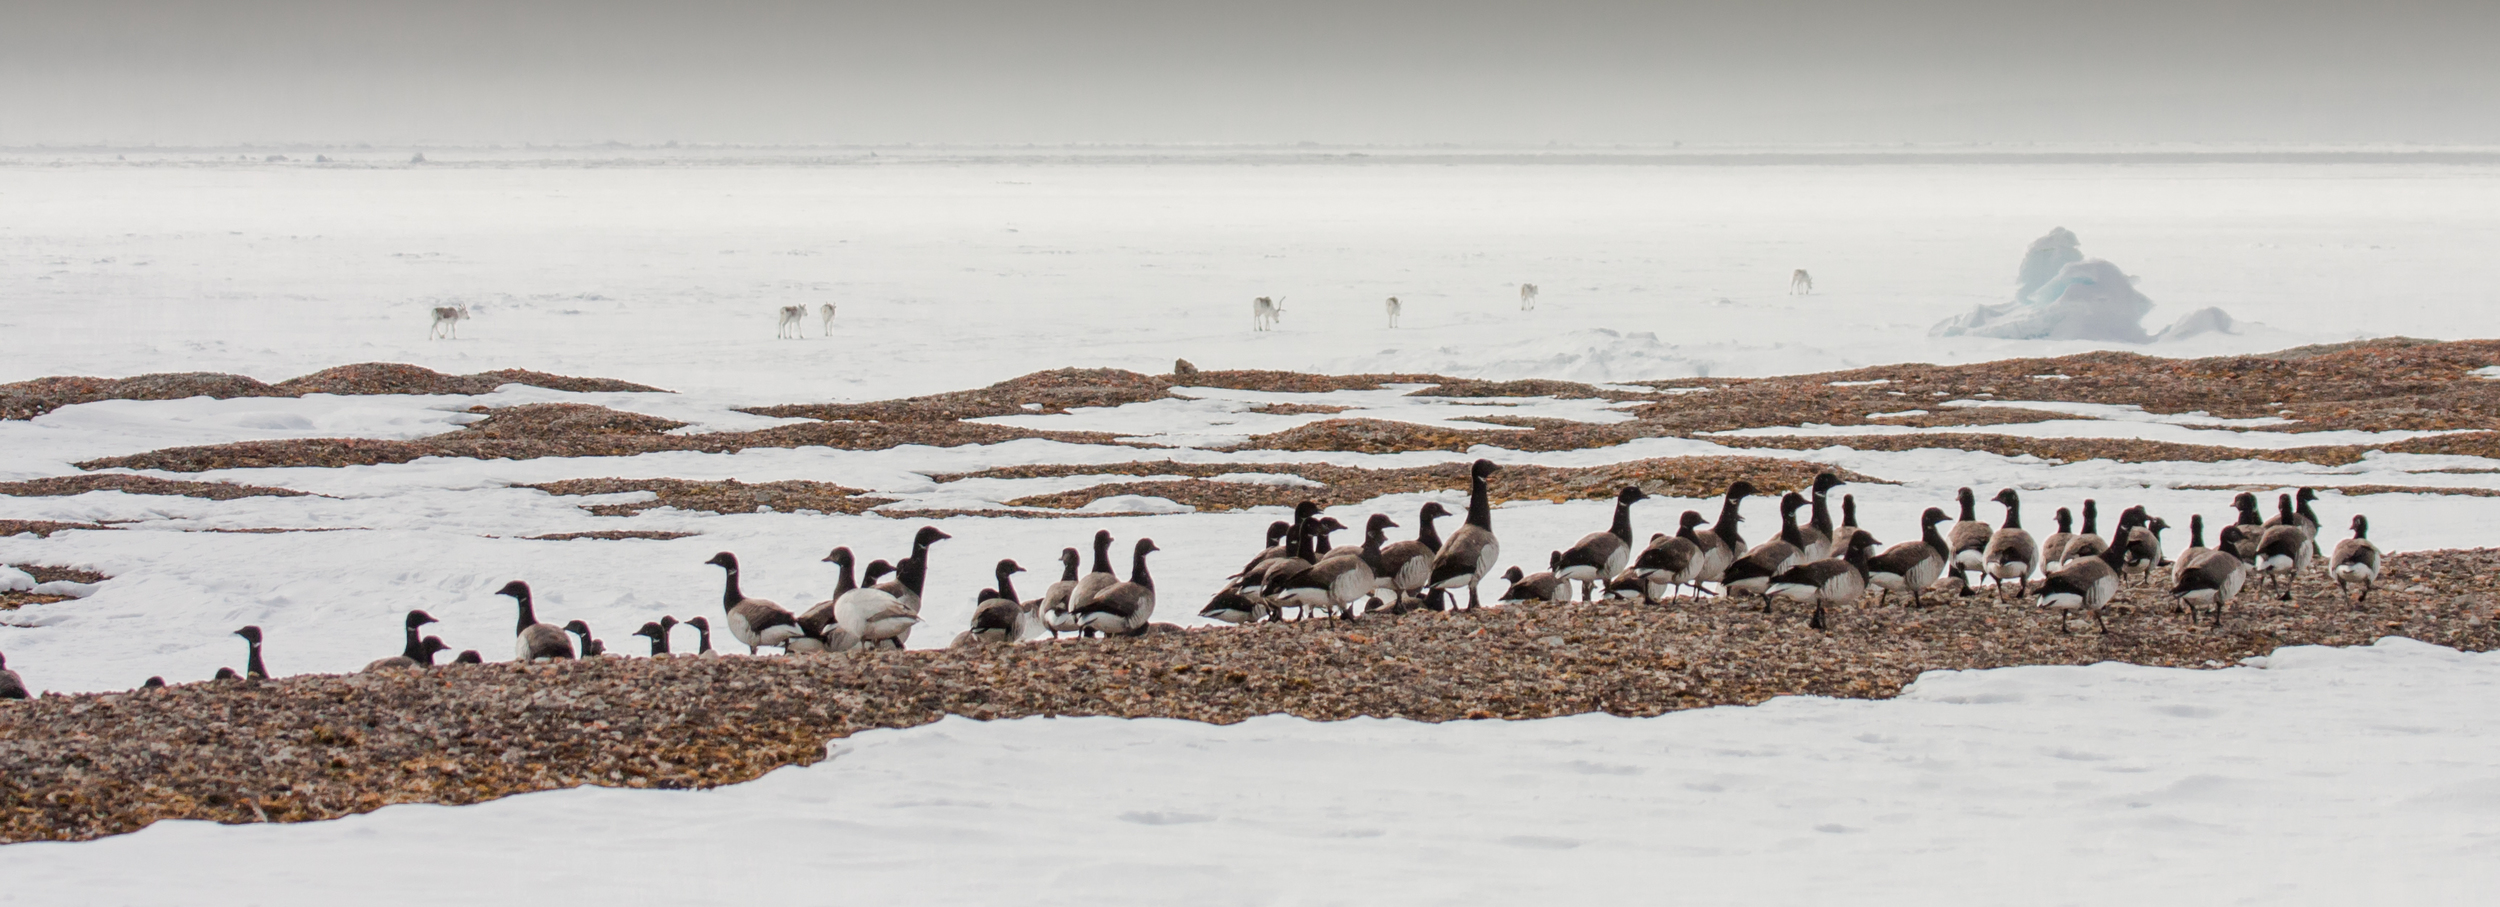 High Arctic brant and Peary caribou, two species we are always happy to see in the early season at Nasaruvaalik Island